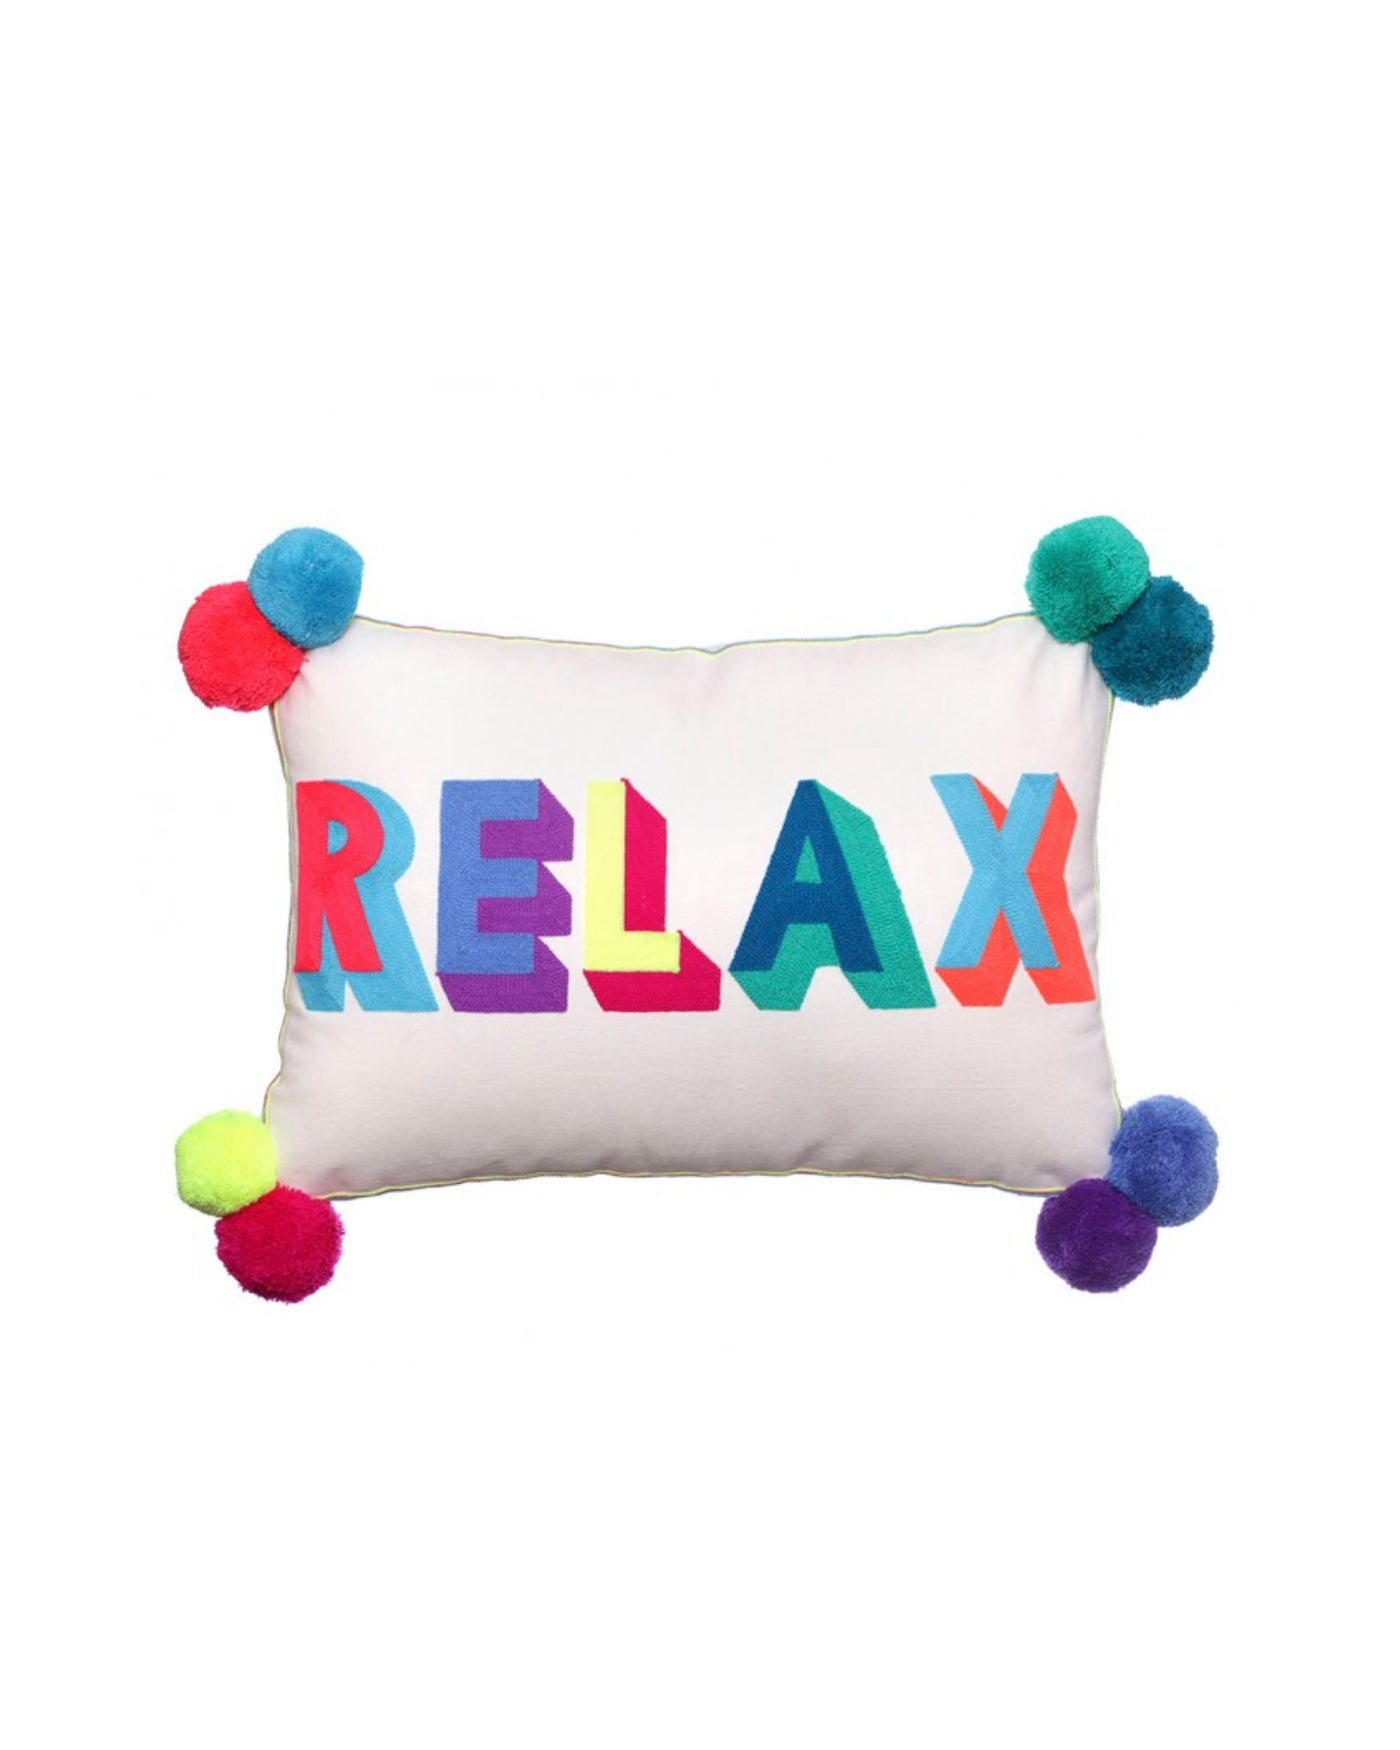 Relax Embroidered Cushion